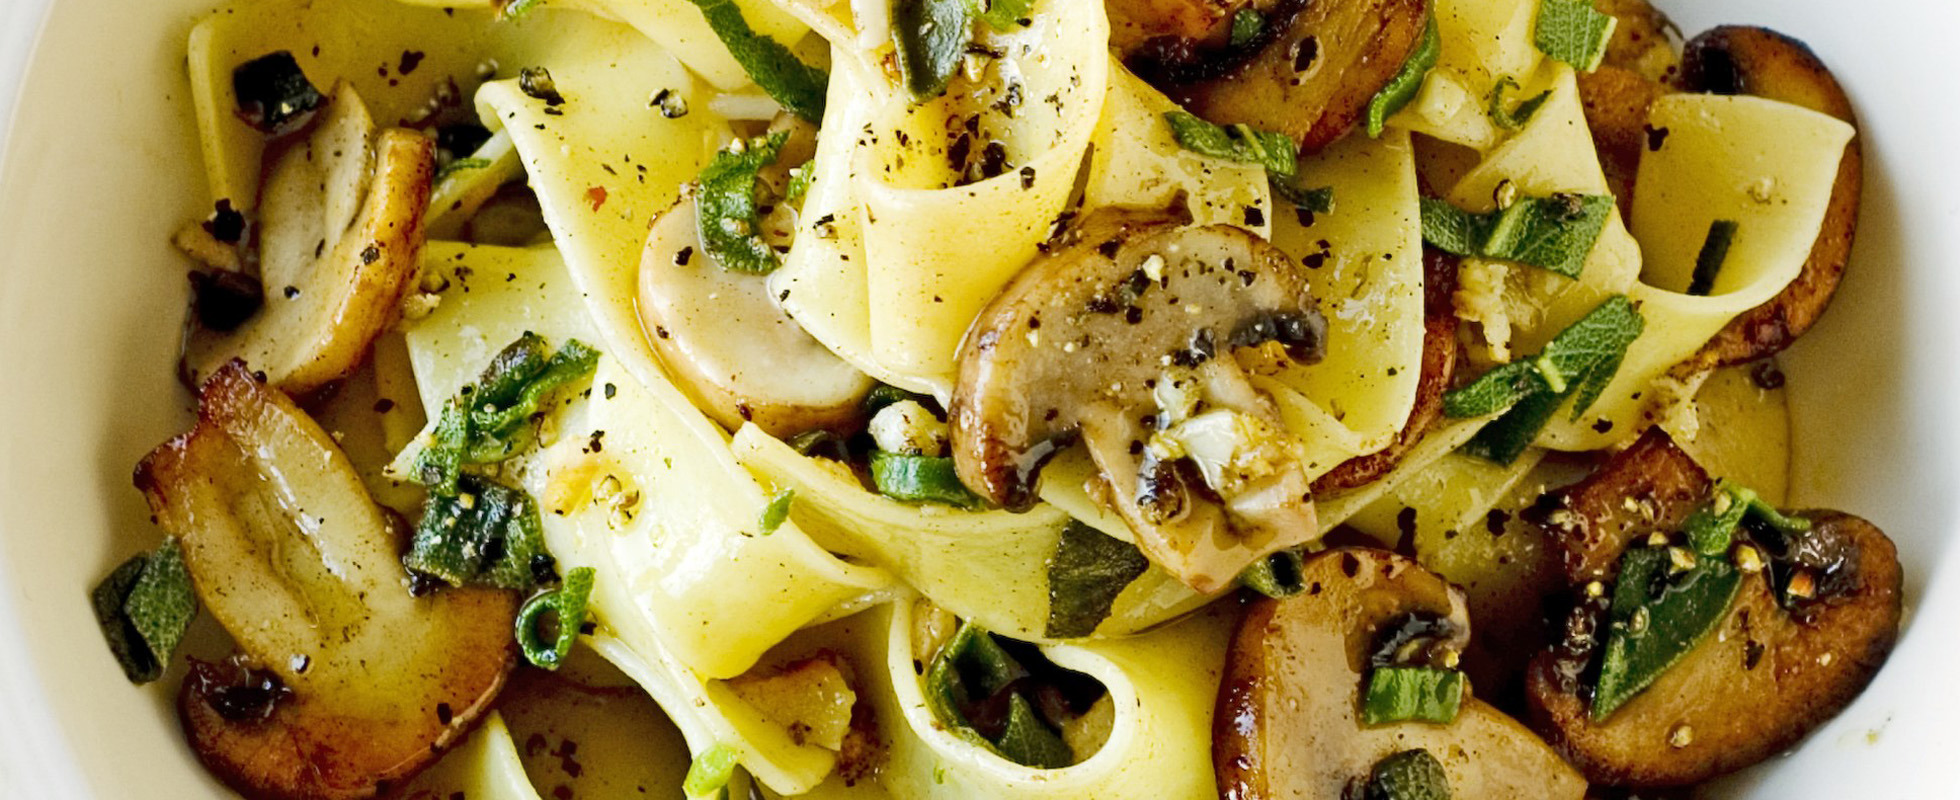 Pappardelle with lemon and sage mushrooms